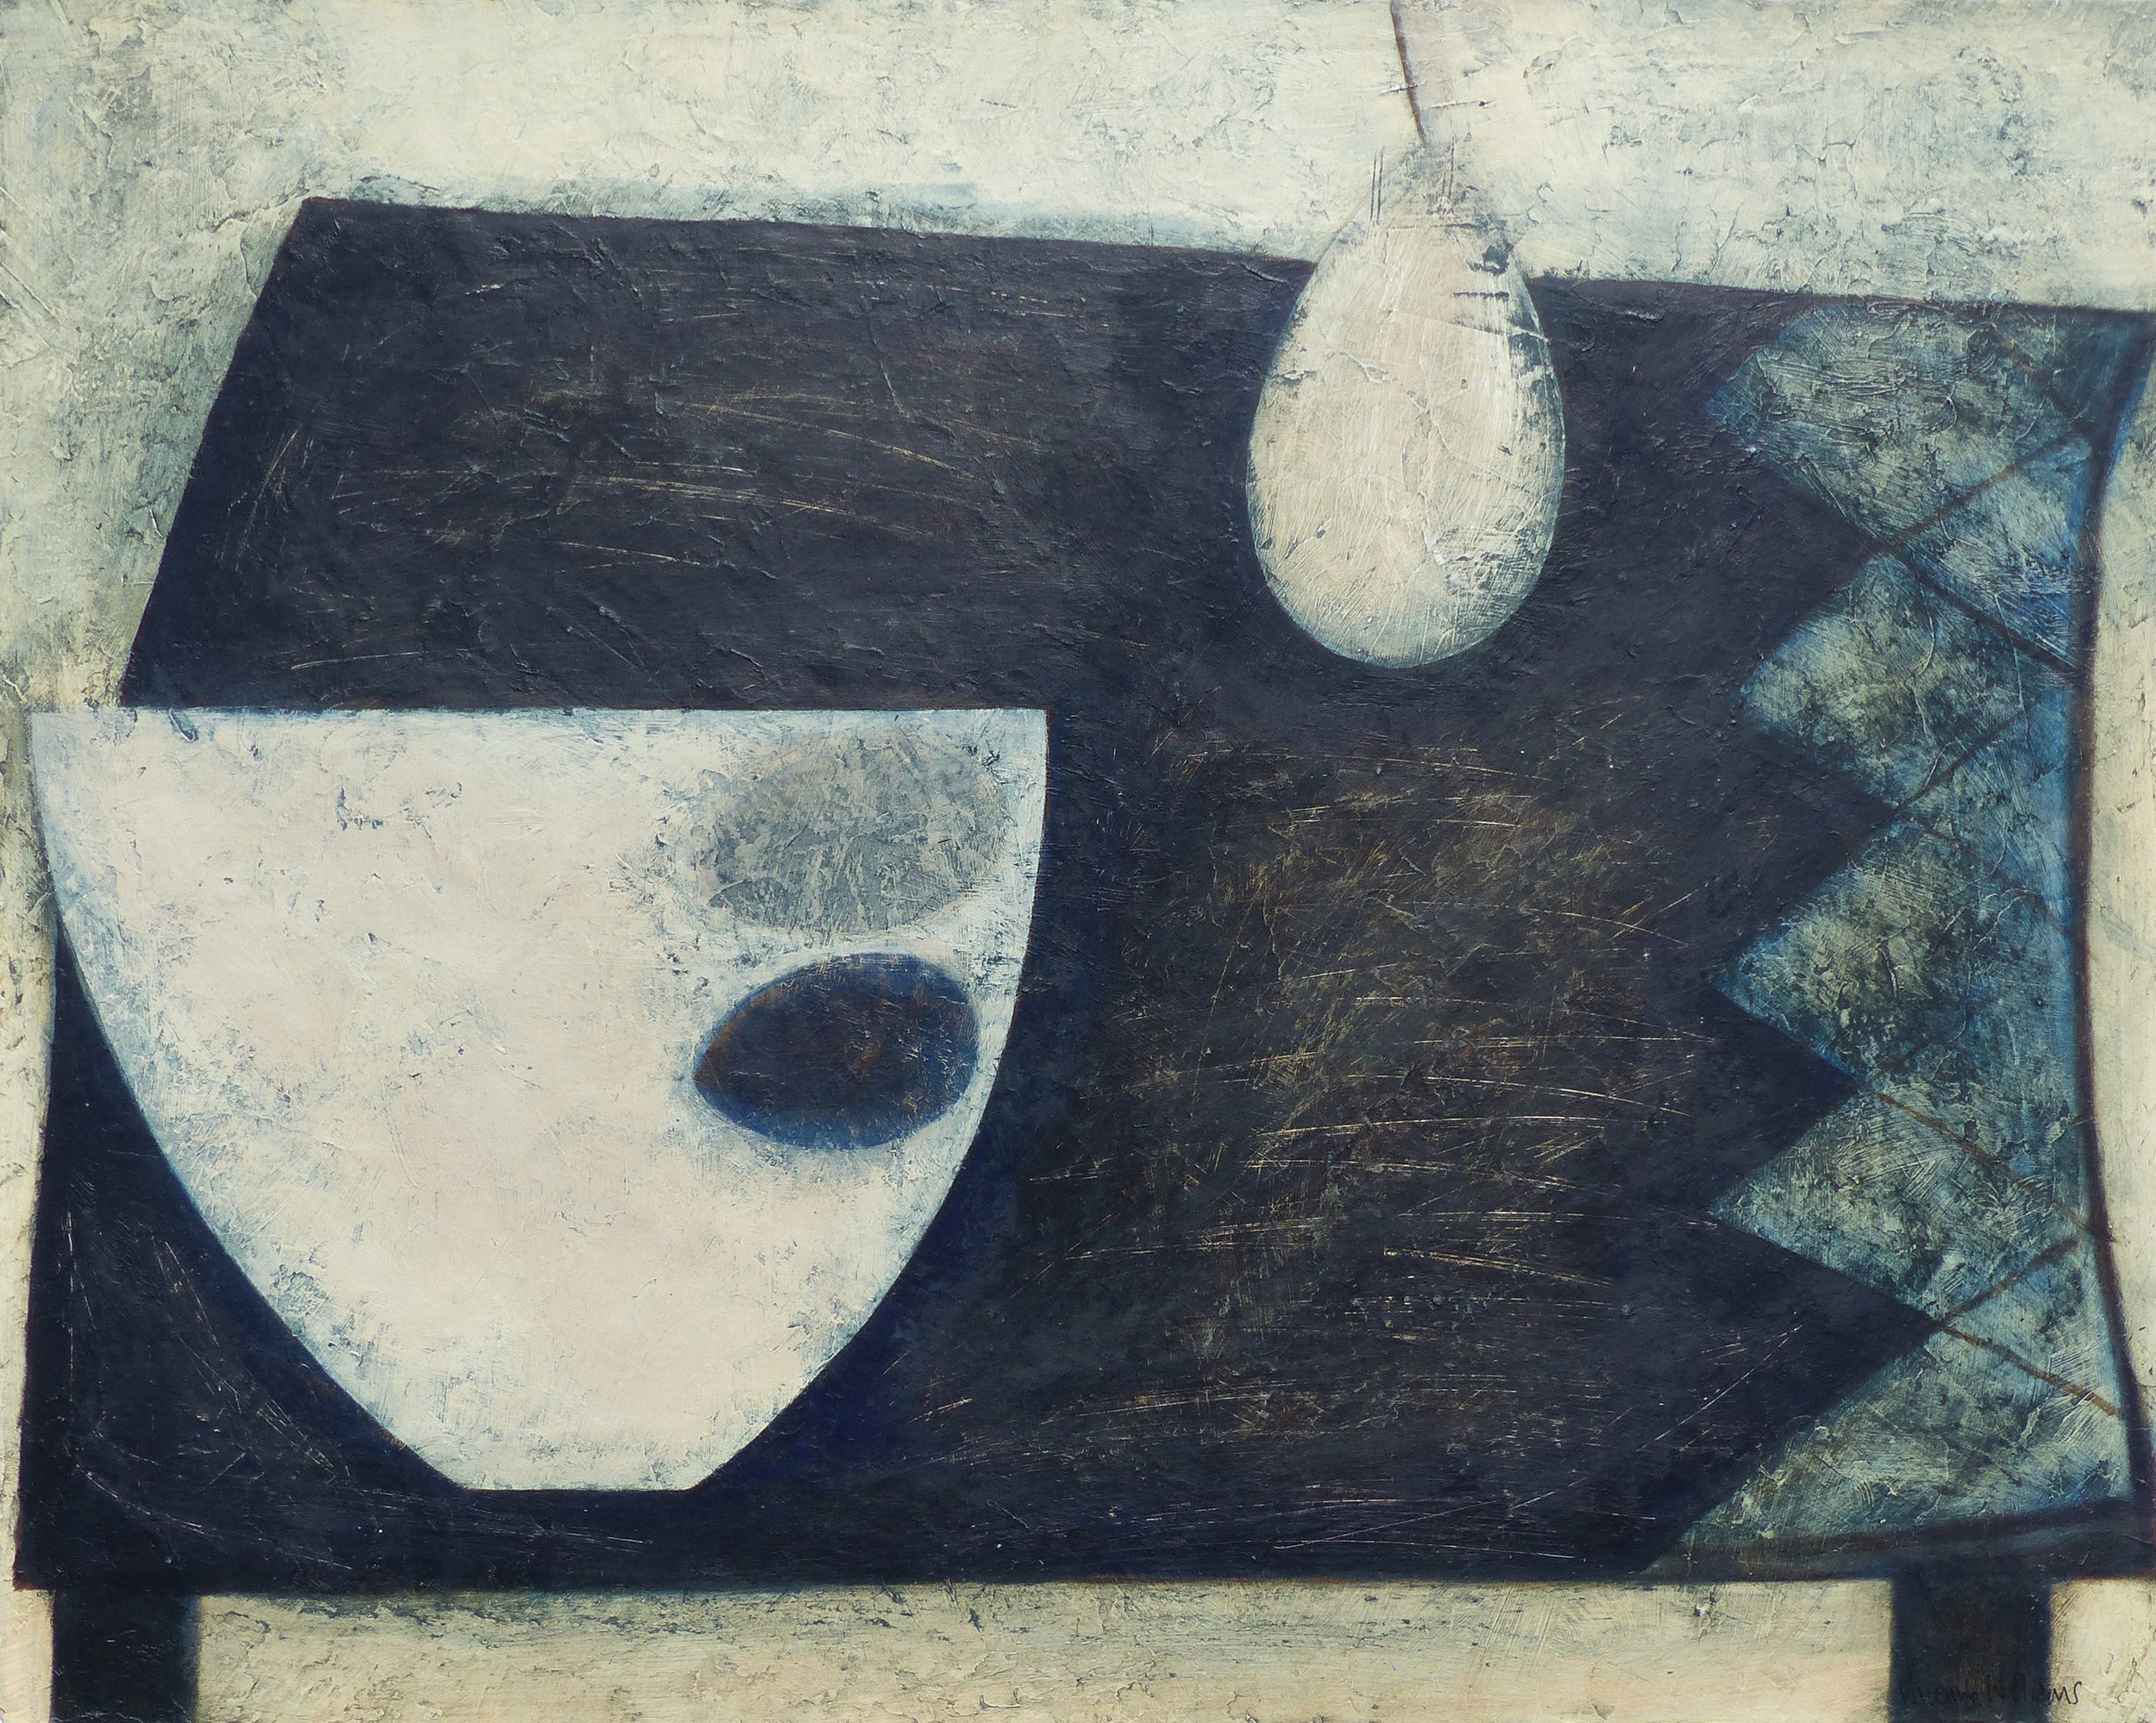 Dark Table with Pear, Bowl and Eggs, 41cm x 51cm, 2015